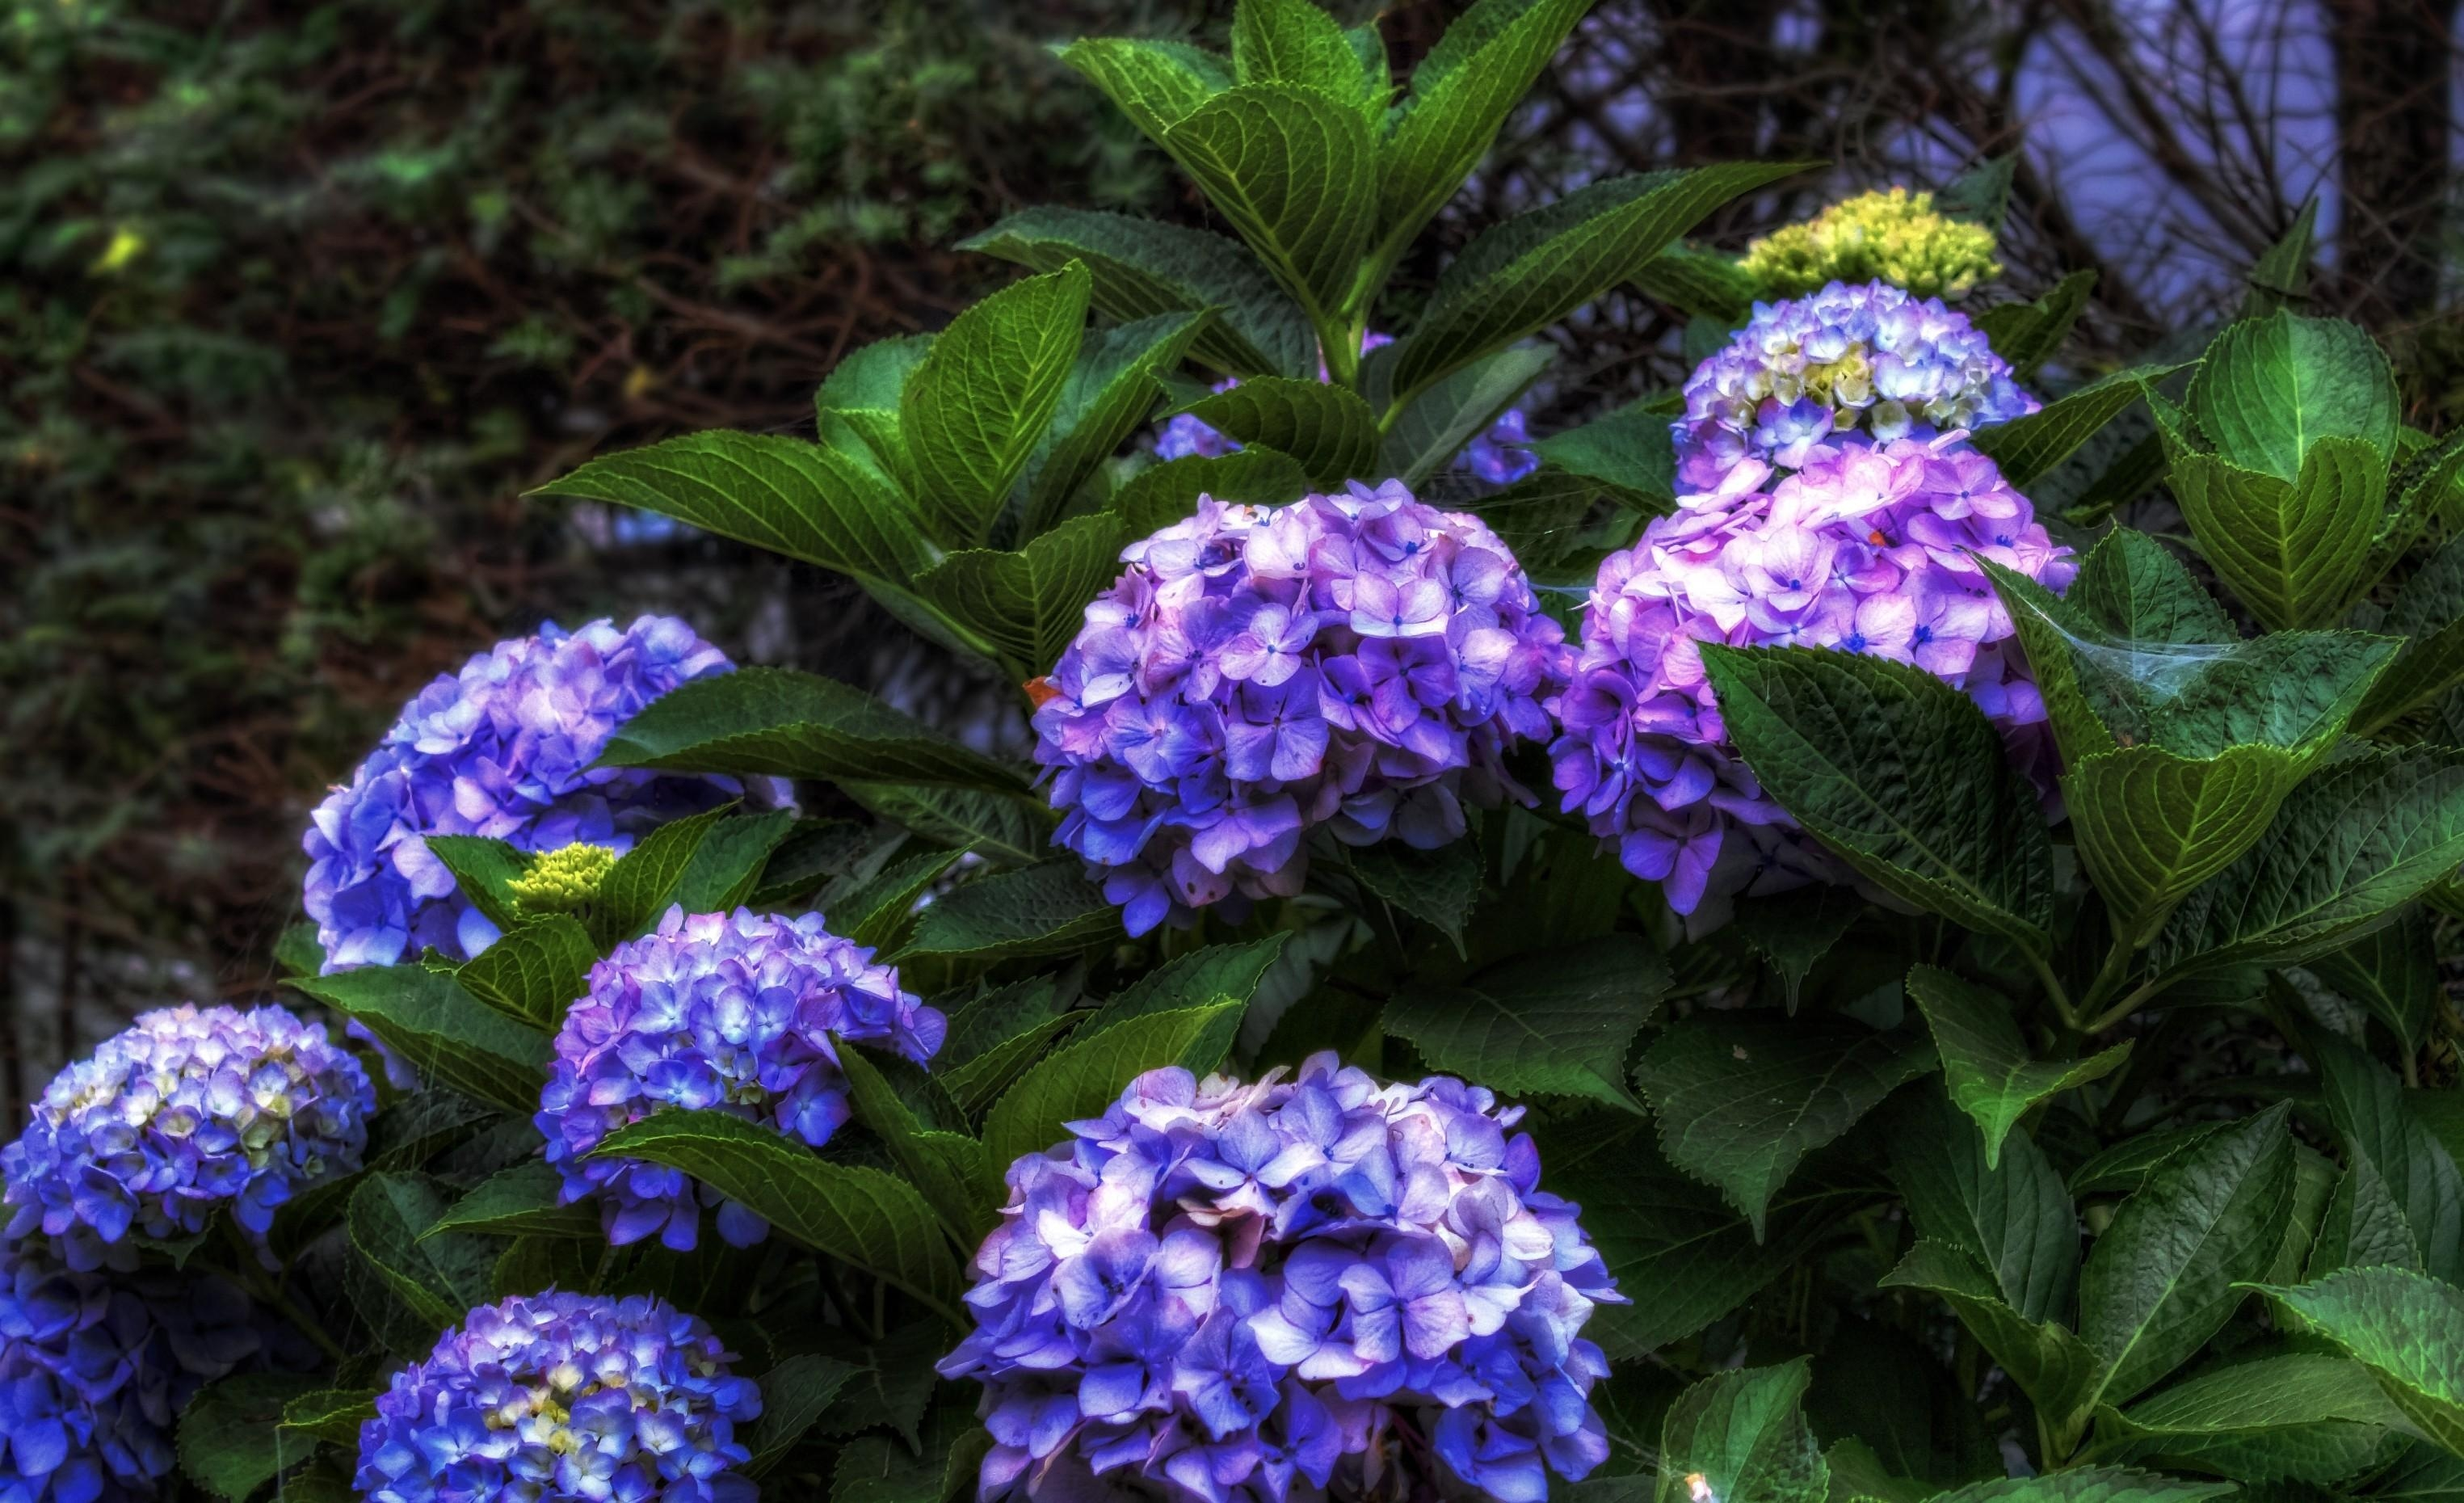 81584 download wallpaper Flowers, Hydrangea, Bush, Bloom, Flowering, Leaves, Greens screensavers and pictures for free